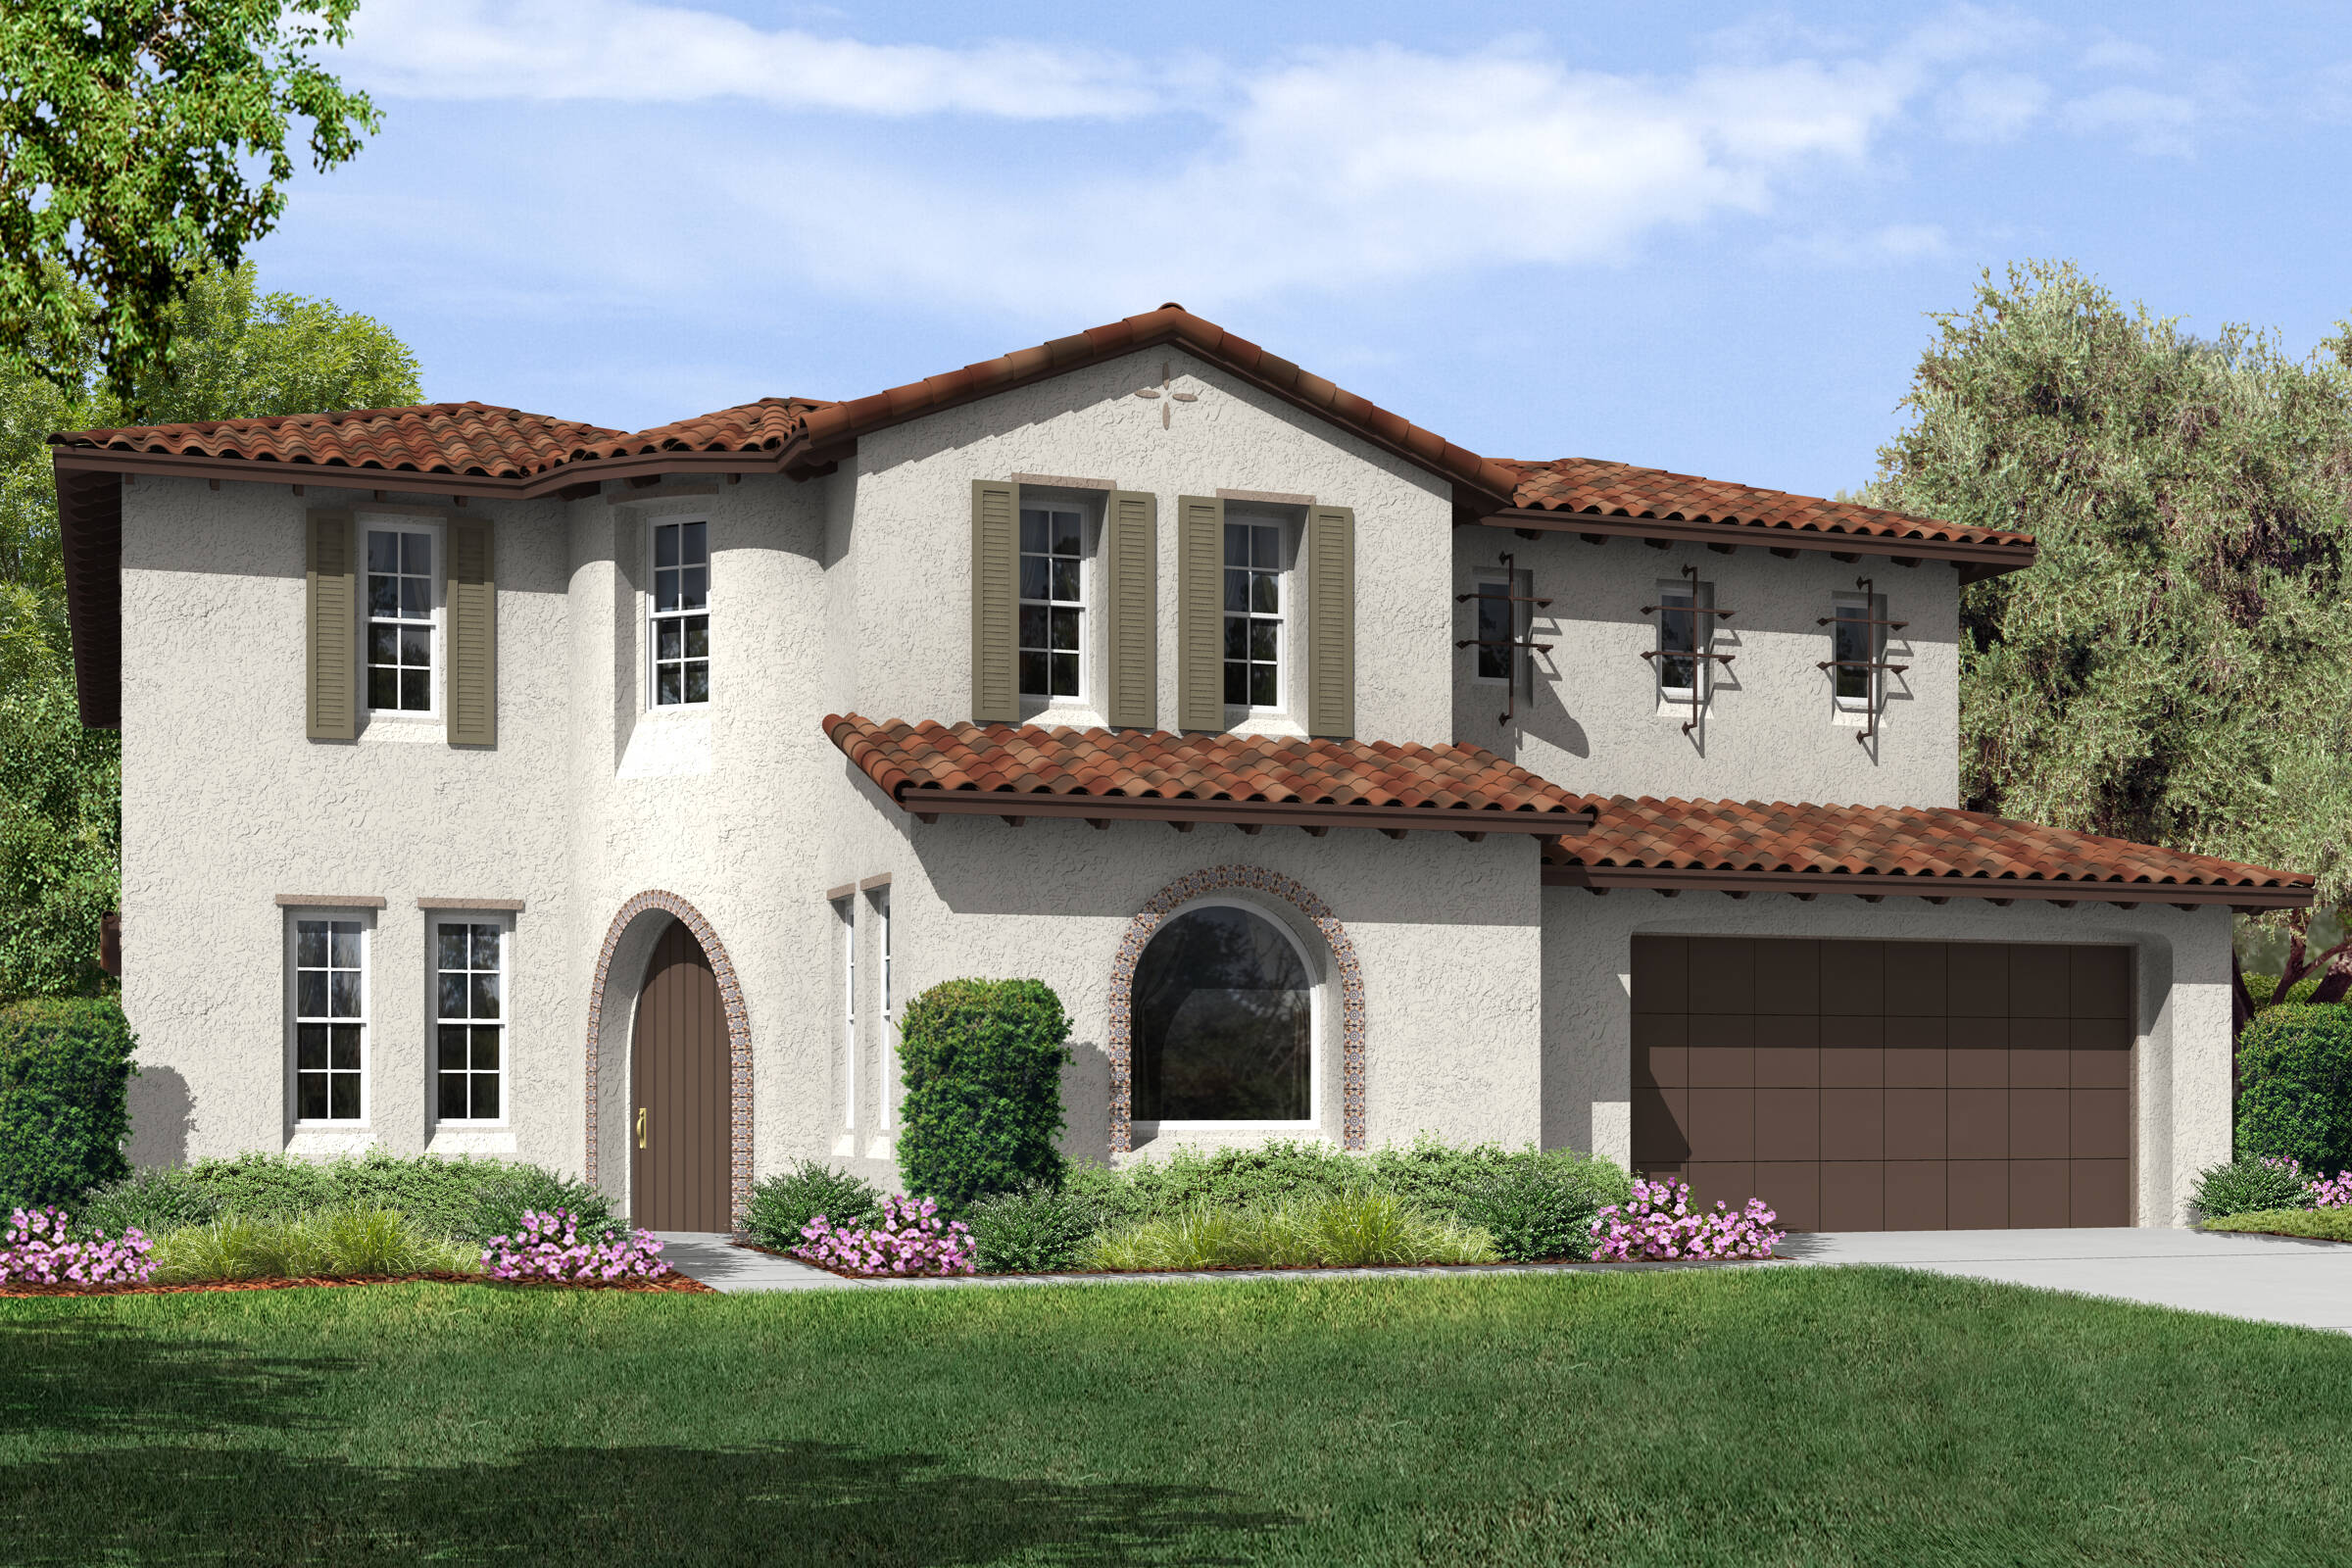 plan 1 belmont a spanish new homes estates collection at meridian hills california